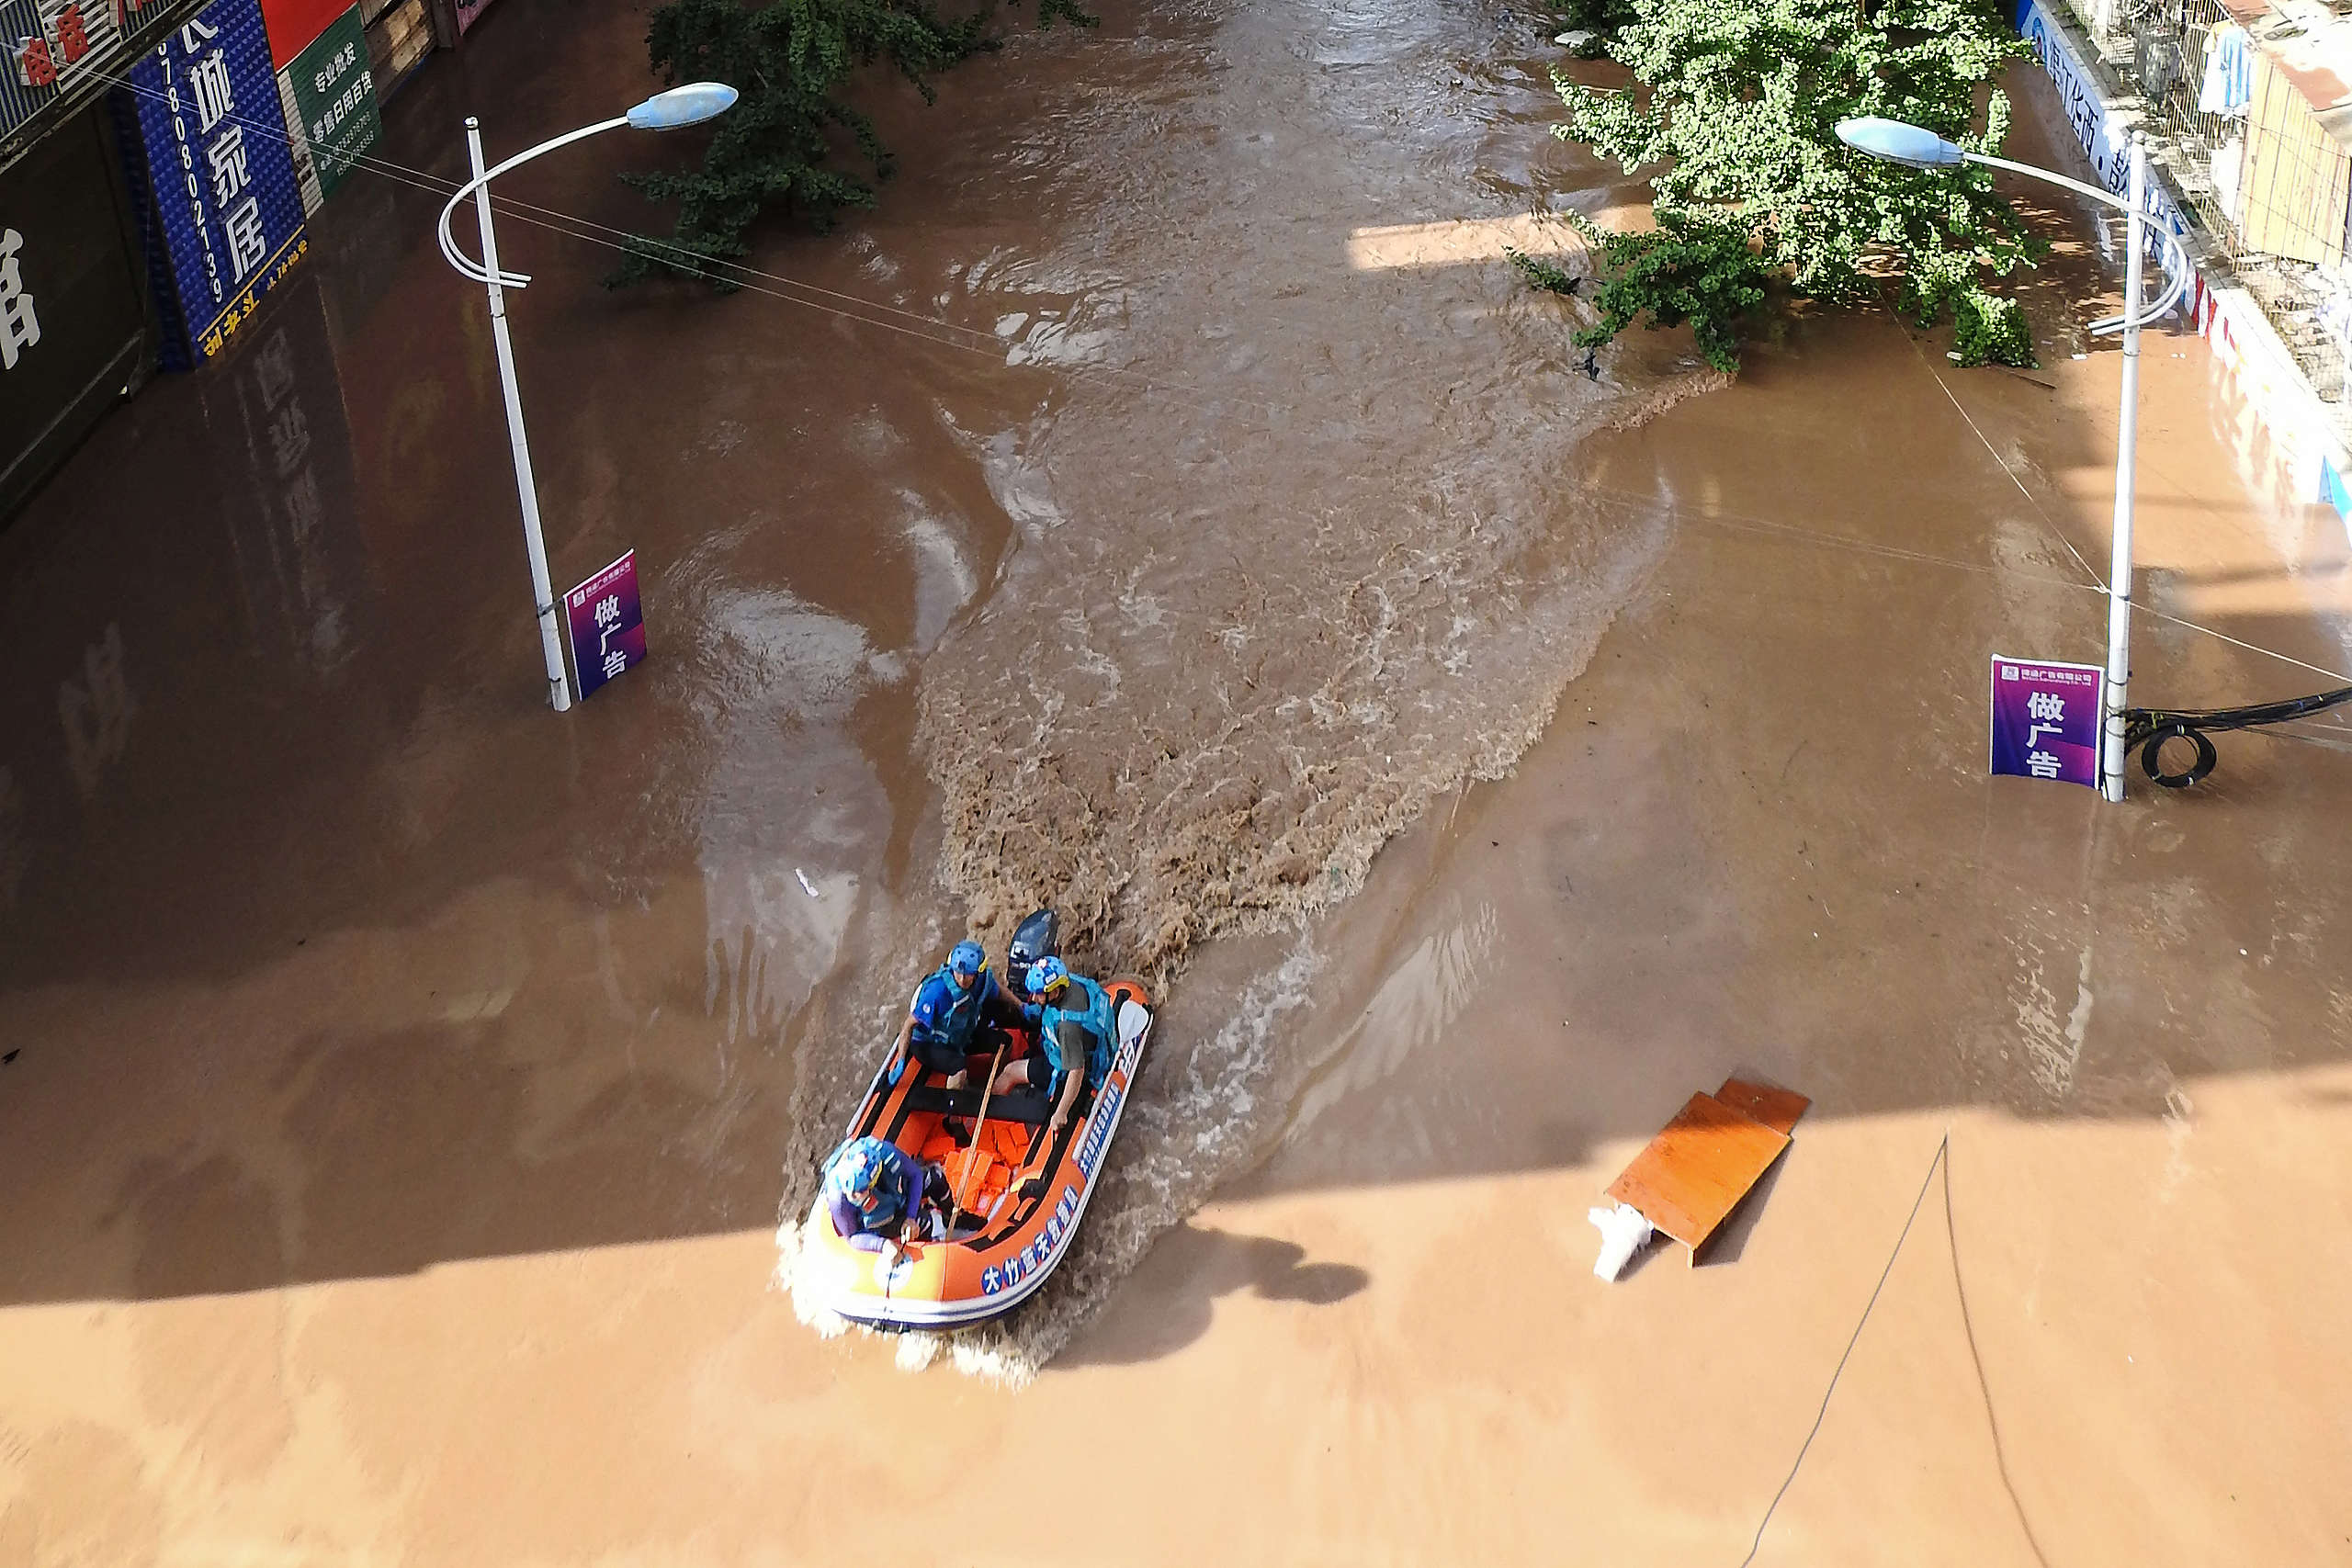 Rescuers looking for stranded residents along a flooded street following heavy rains in Dazhou, China. © STR/AFP via Getty Images